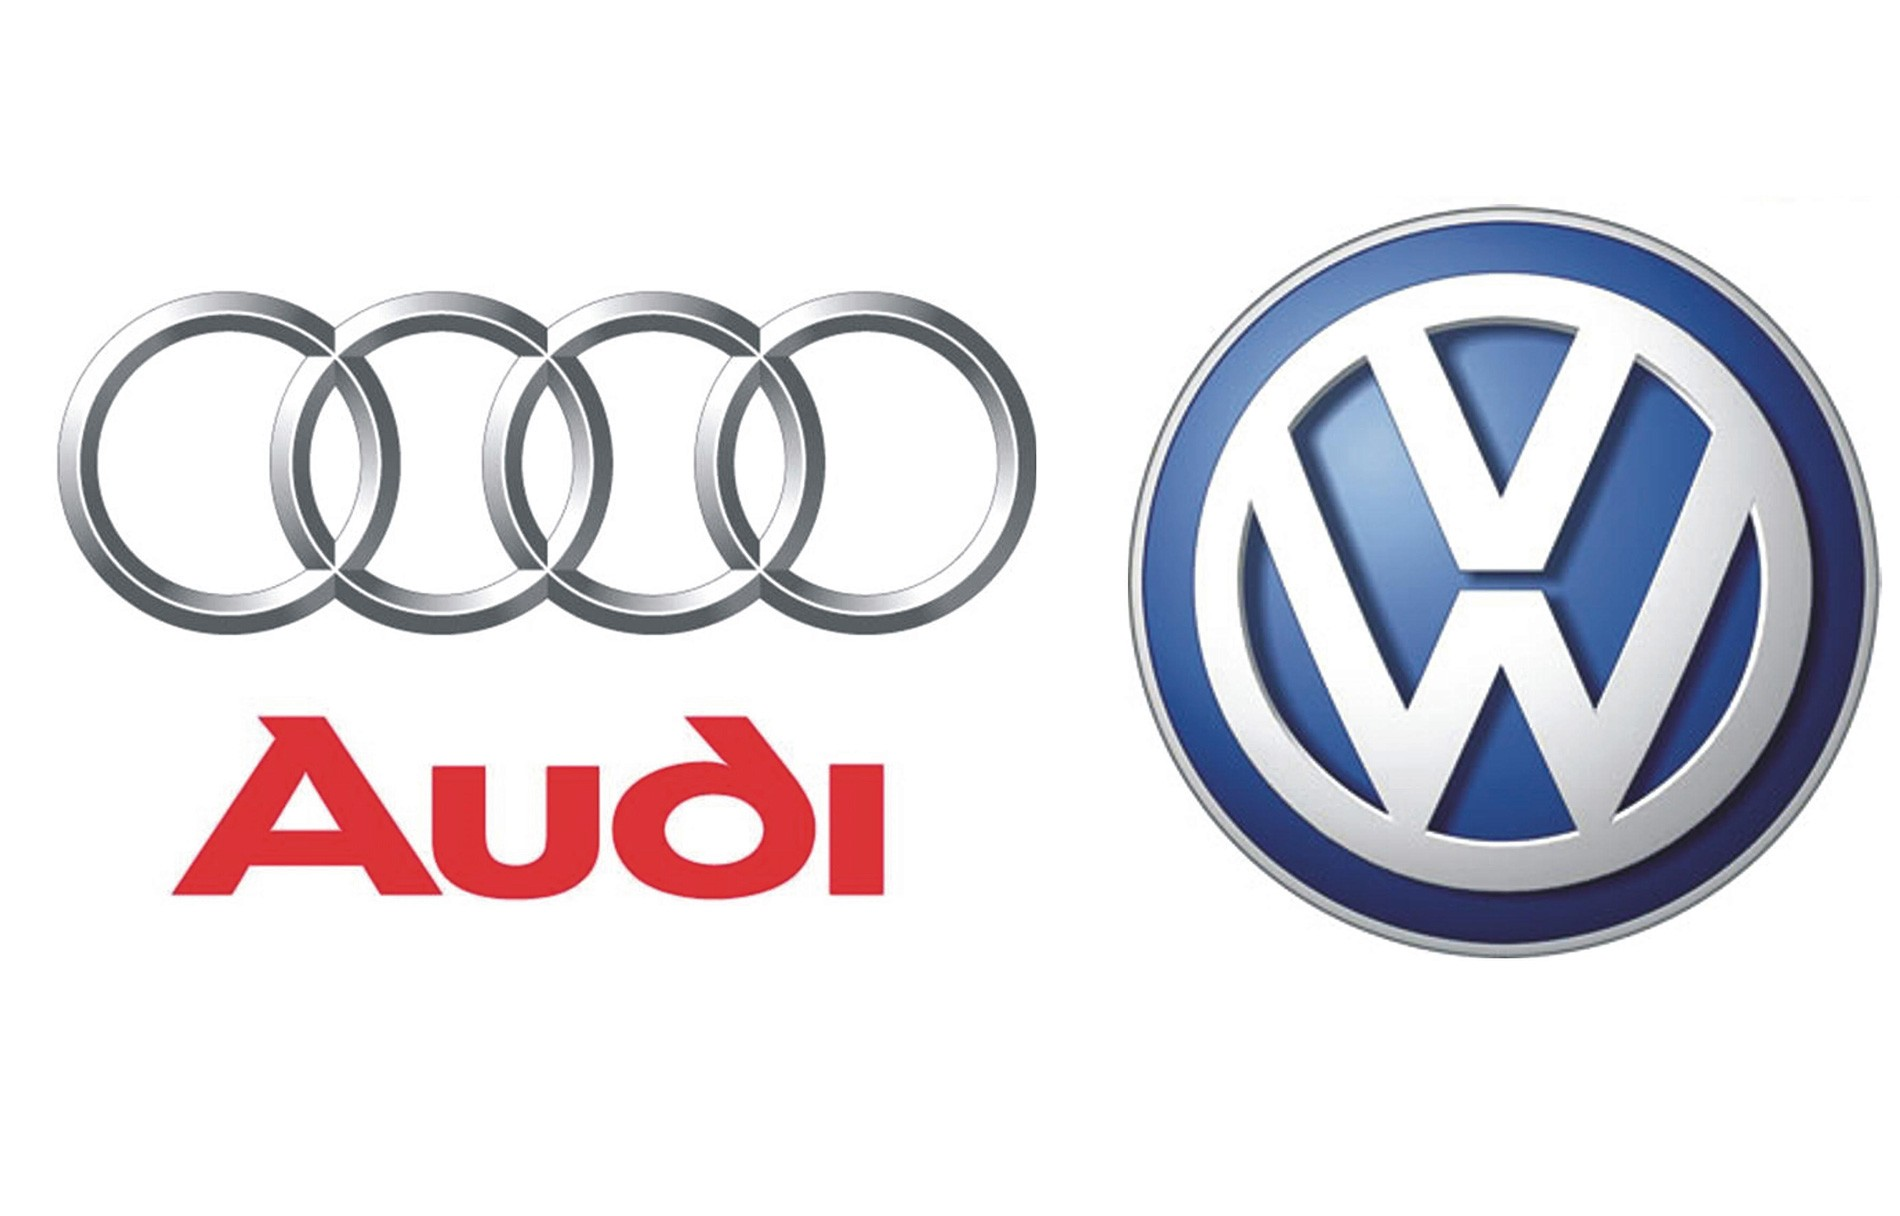 Volkswagen Audi Group Logo likewise BMW E30 Delphin Grey furthermore Coupe  SL Blower Fan Switch Blower Fan Motor Only Runs Very Slowly as well Vauxhall People Carrier further Blower Motor Resistor Replacement. on blower motor resistor damage